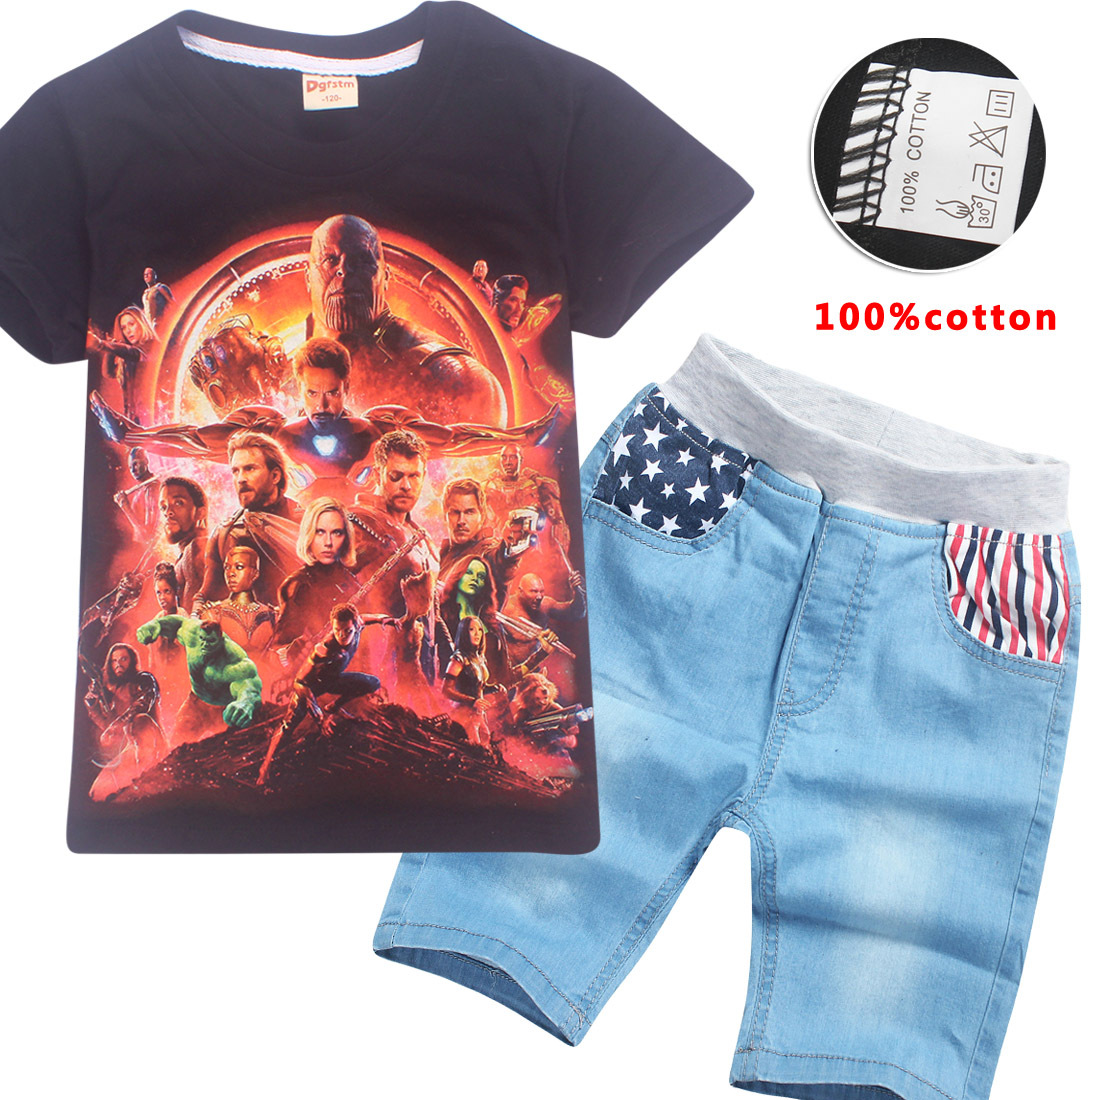 Z&Y 6-14Years Tiny Cottons 2018 Casual Children Clothing Set Fashion T Shirt and Shorts Jeans Summer Outfit Teenager Clothes